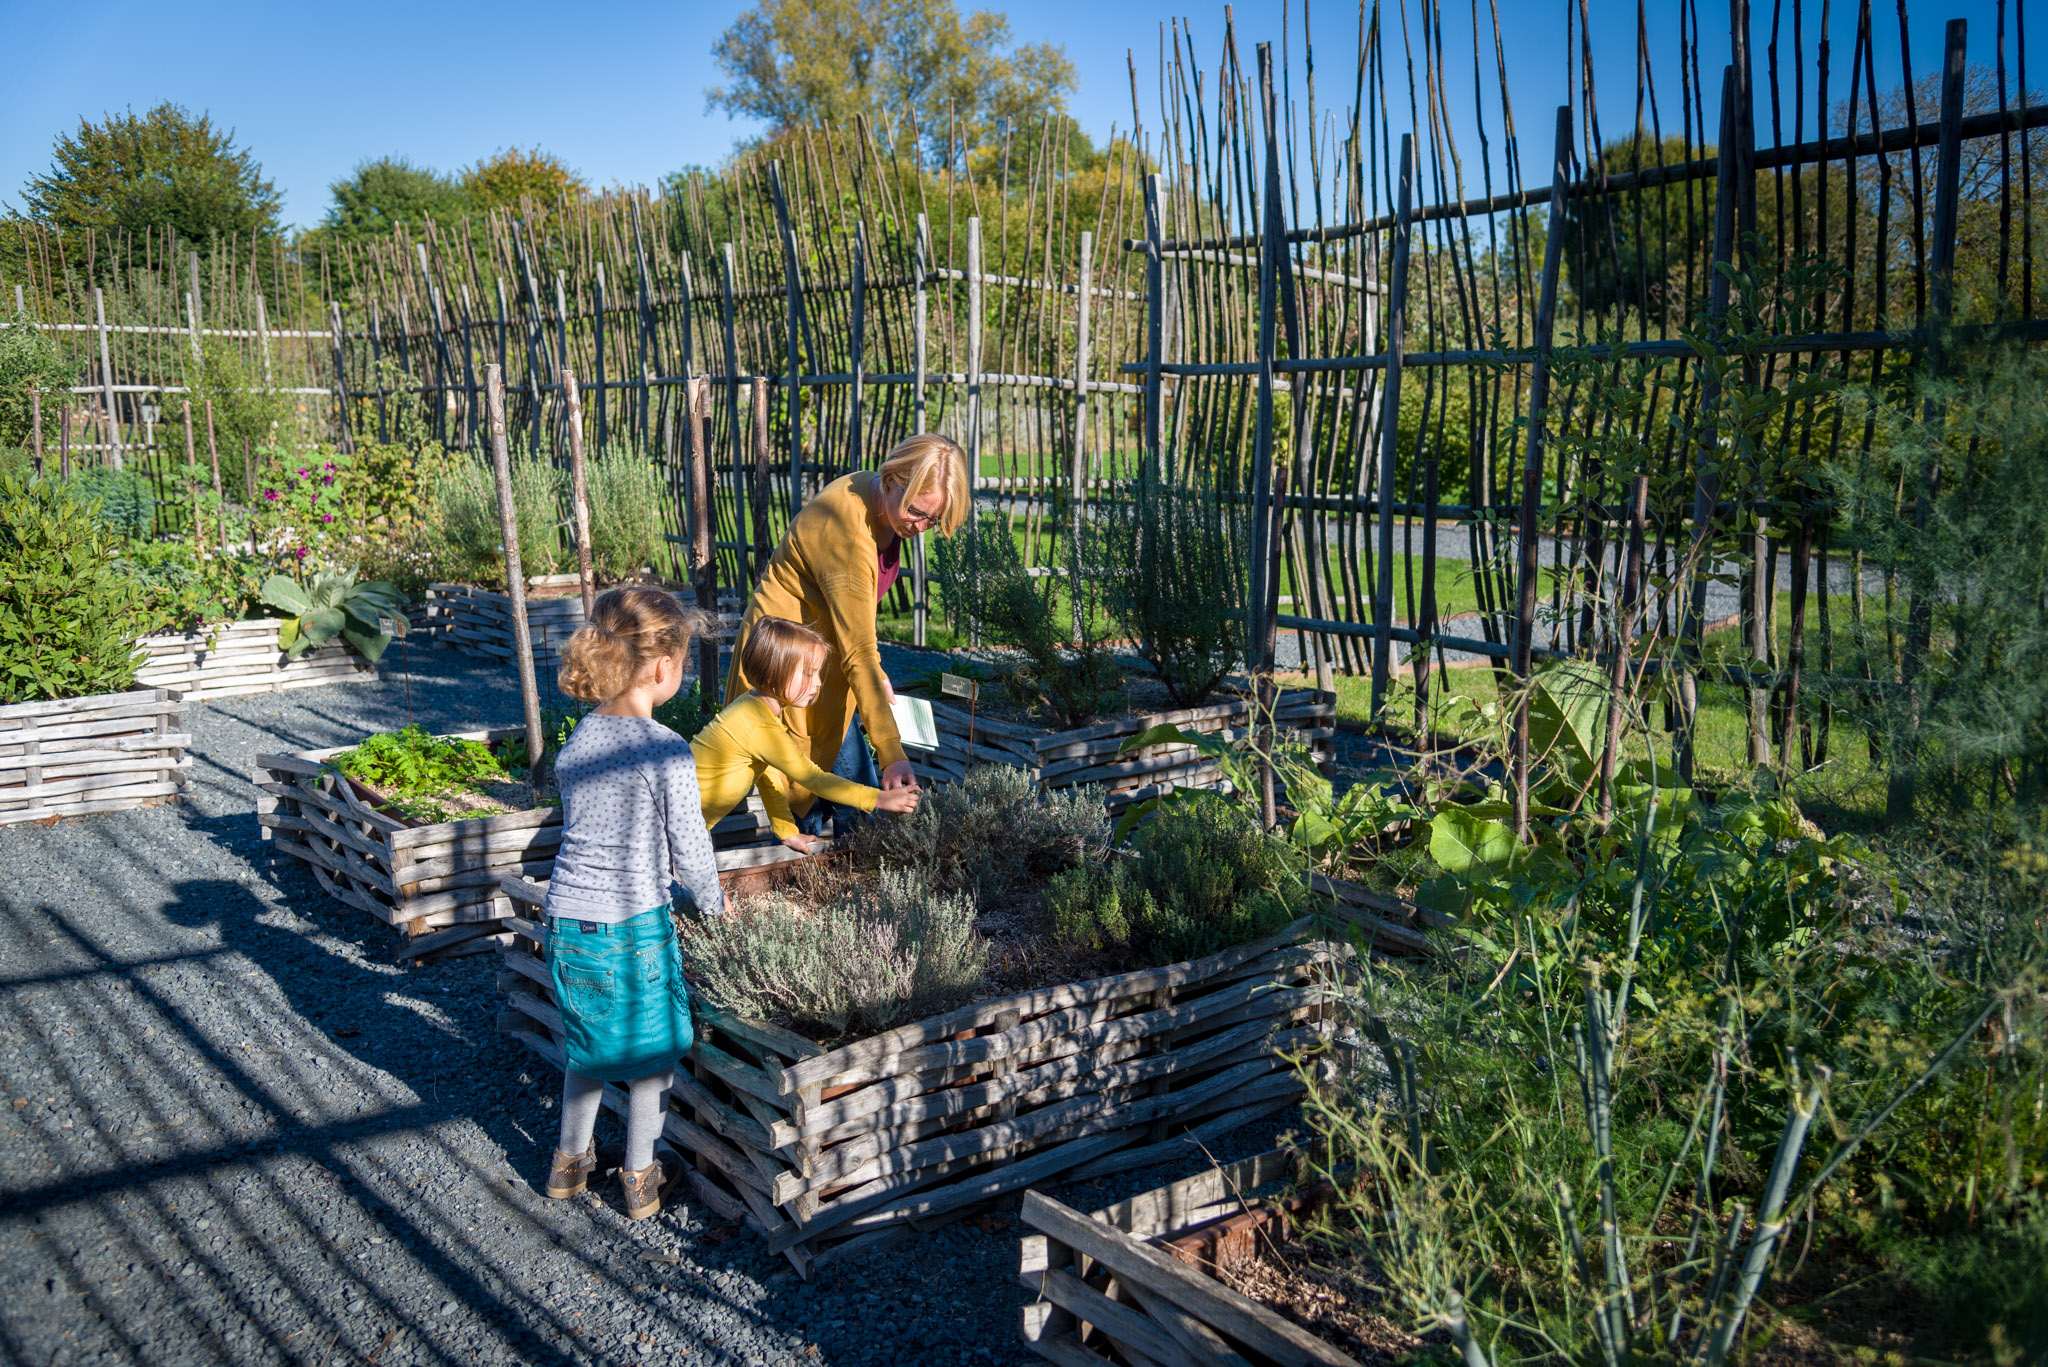 Discovering the ideal vegetable patch